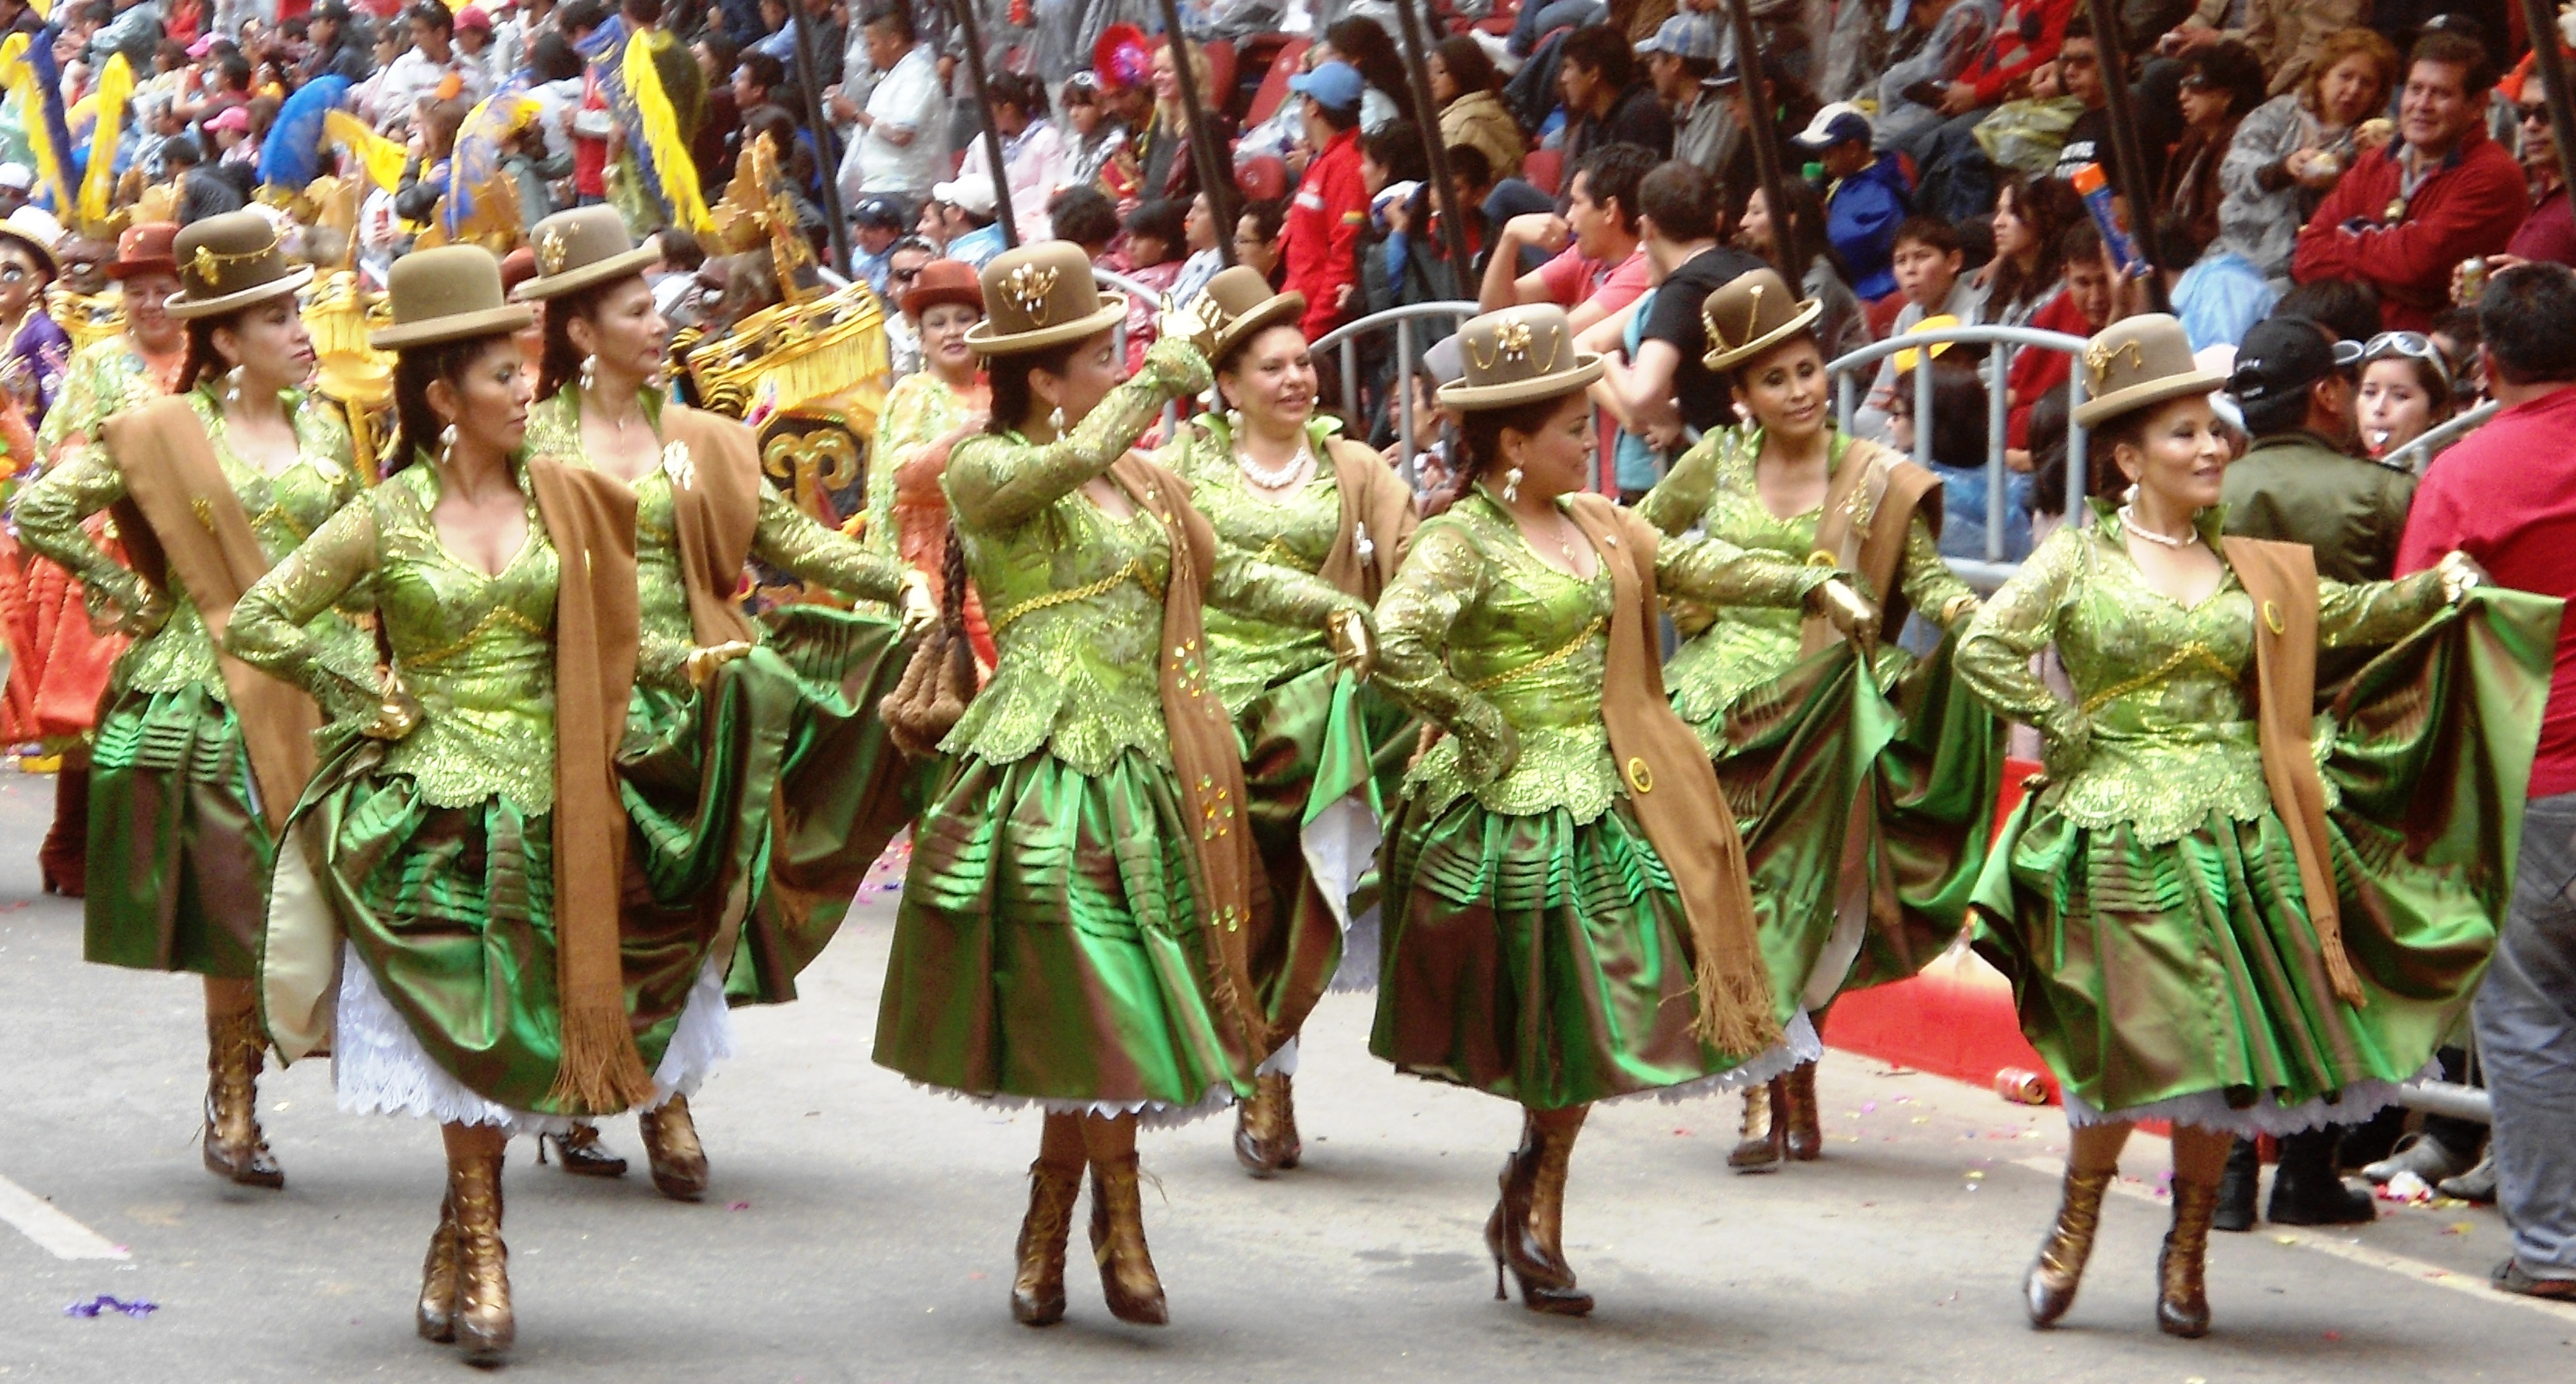 Description Desfile de morenada 02 Carnaval de Oruro 2012.JPG